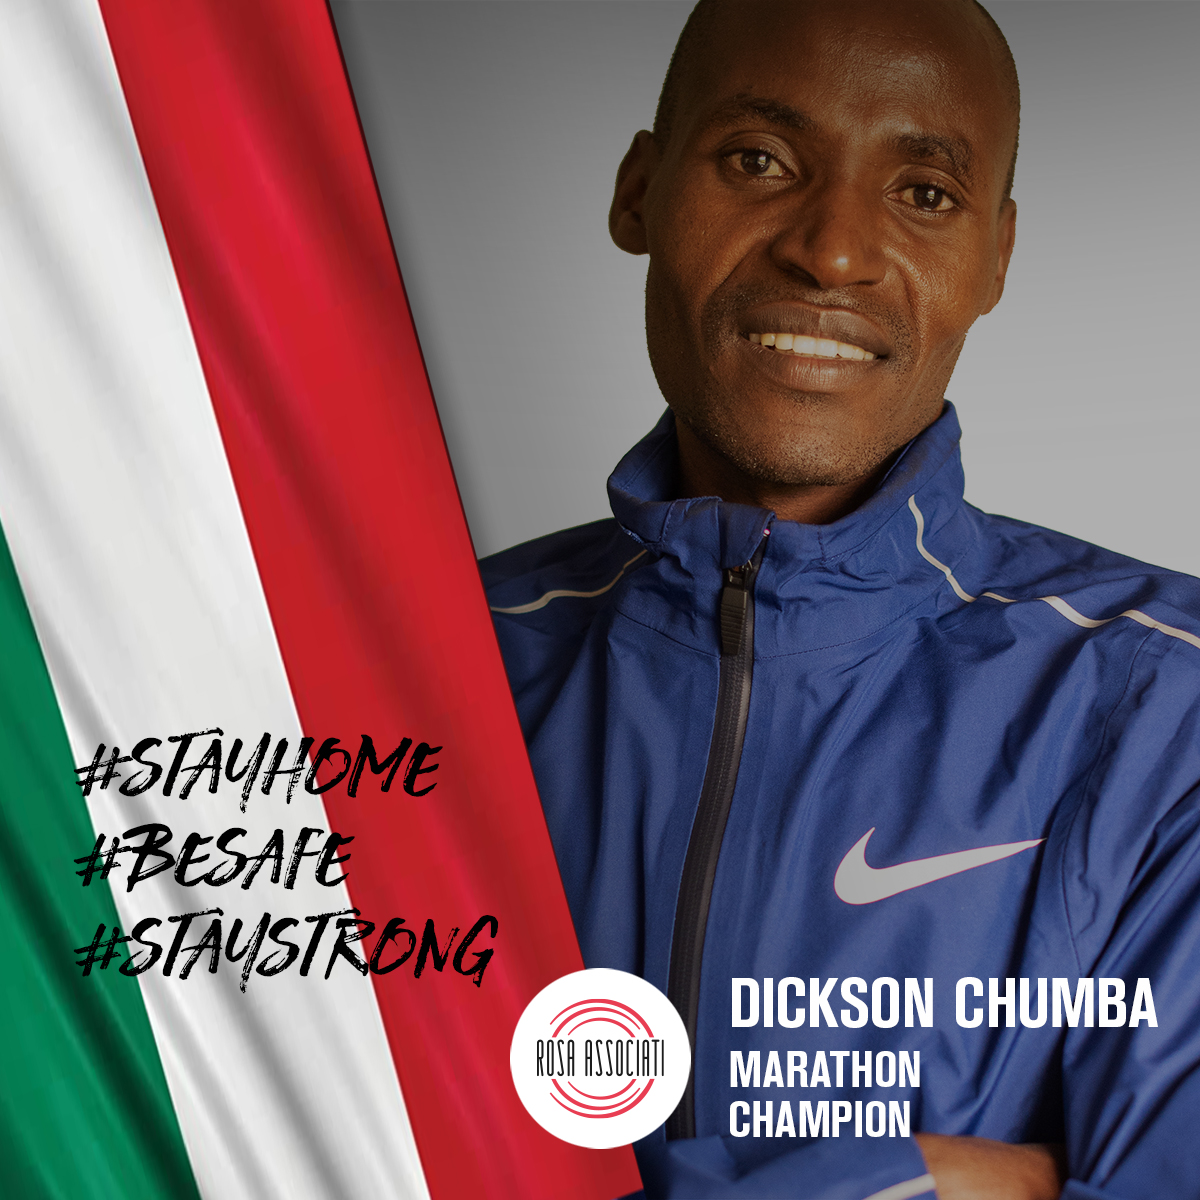 21 2020 - Campagna social We can win this race together-Dickson Chumba